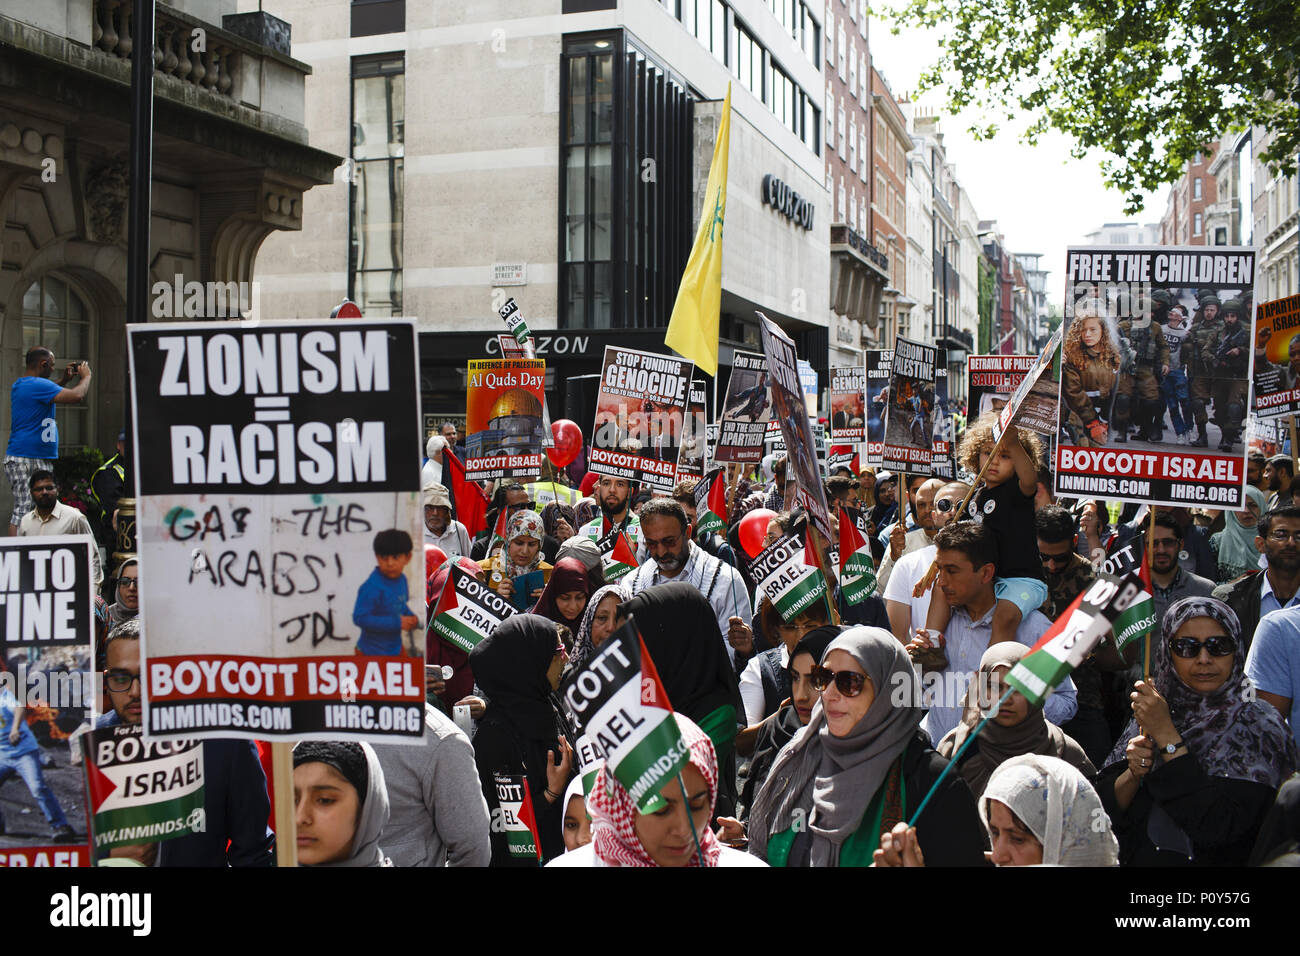 London, UK. 10th June, 2018. Demonstrators take part in the annual pro-Palestine/anti-Israel Al Quds Day demonstration in central London. The demonstration is notably controversial in the city for the flying of Hizbullah flags that typically takes place during the course of it. Credit: David Cliff/SOPA Images/ZUMA Wire/Alamy Live News - Stock Image